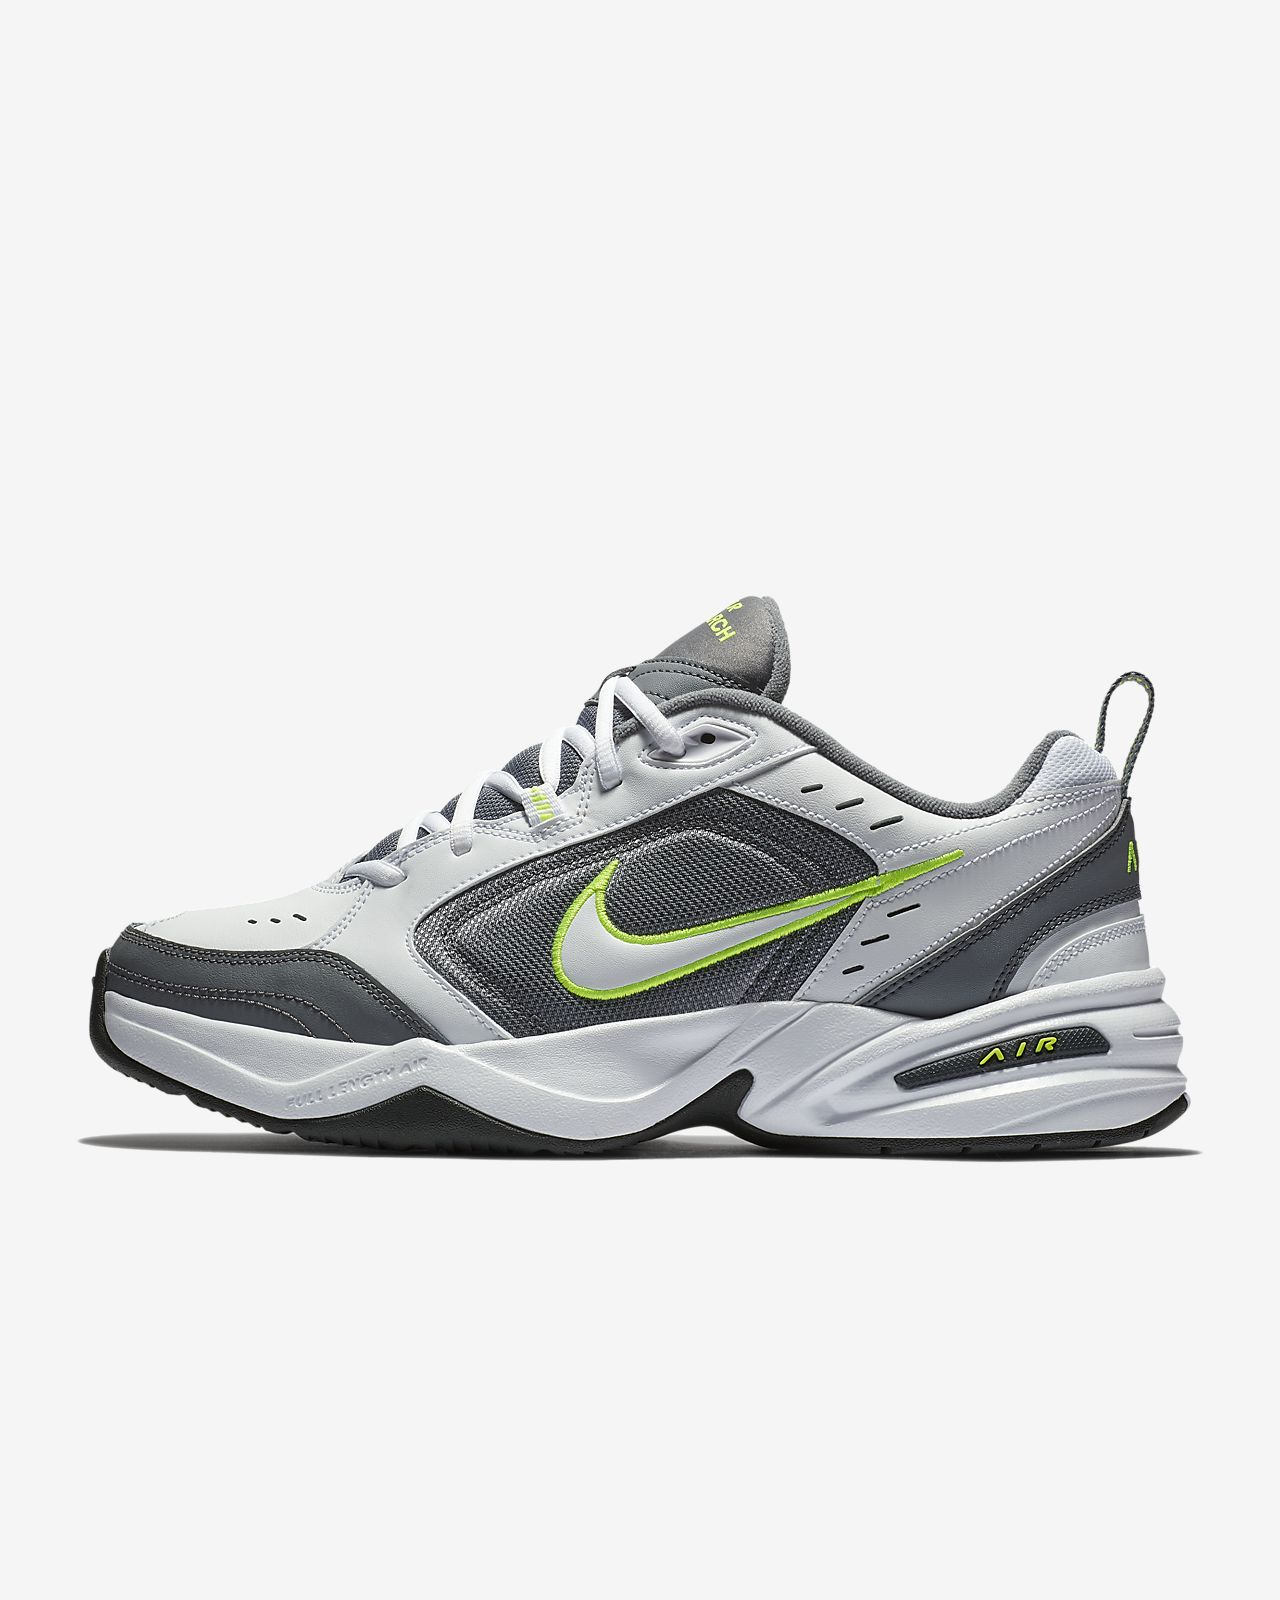 caccbc6cad Nike Air Monarch IV Lifestyle Gym Shoe. Nike.com